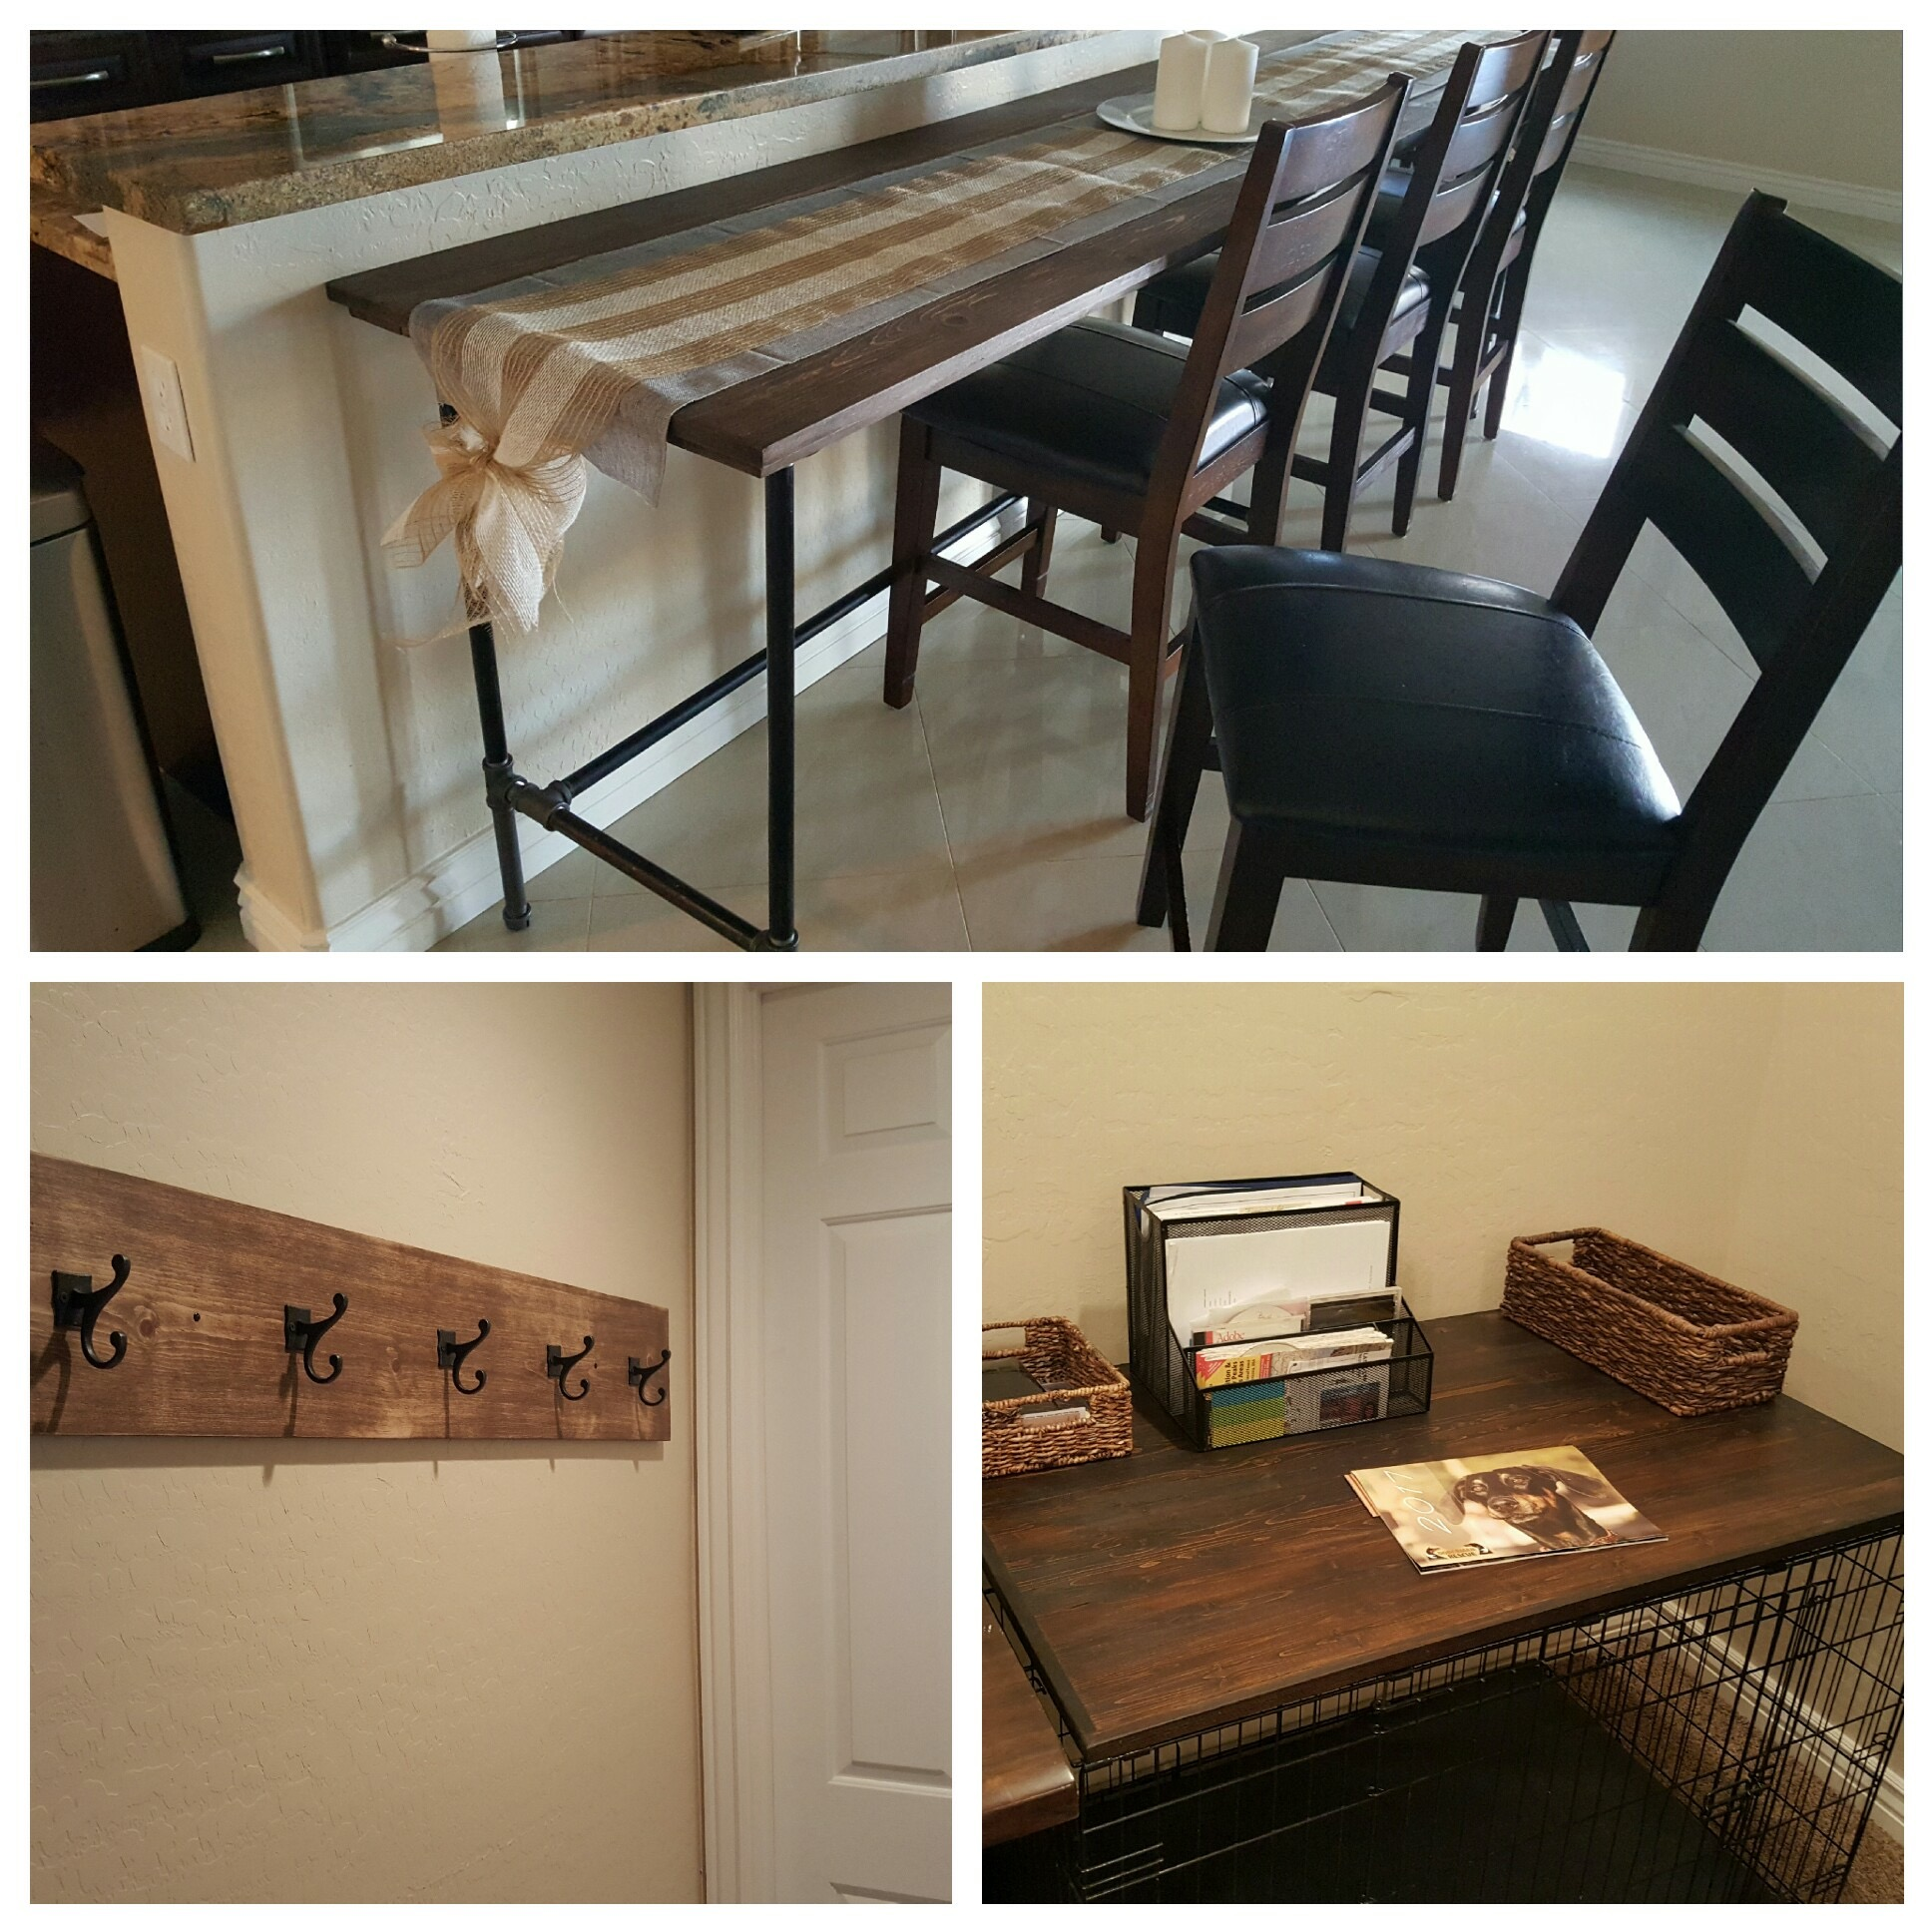 Wayne Counter Table, Coat Rack, and Dog Kennel Cover